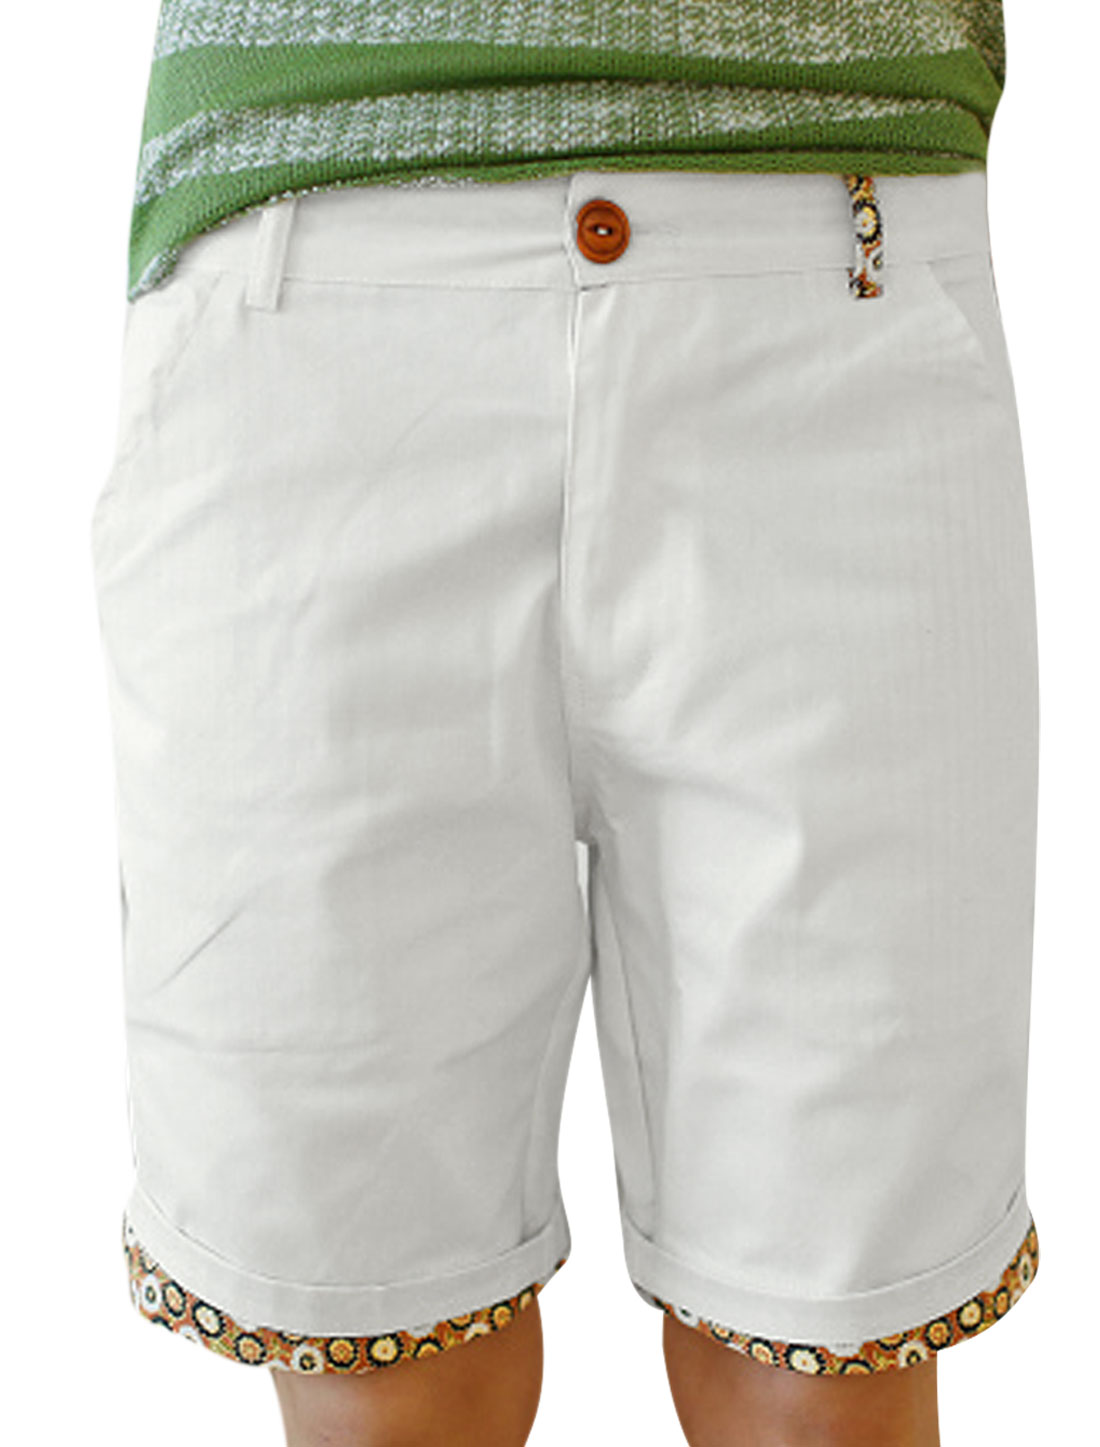 Man Stylish Slant Pockets Casual Floral Details Shorts White W33